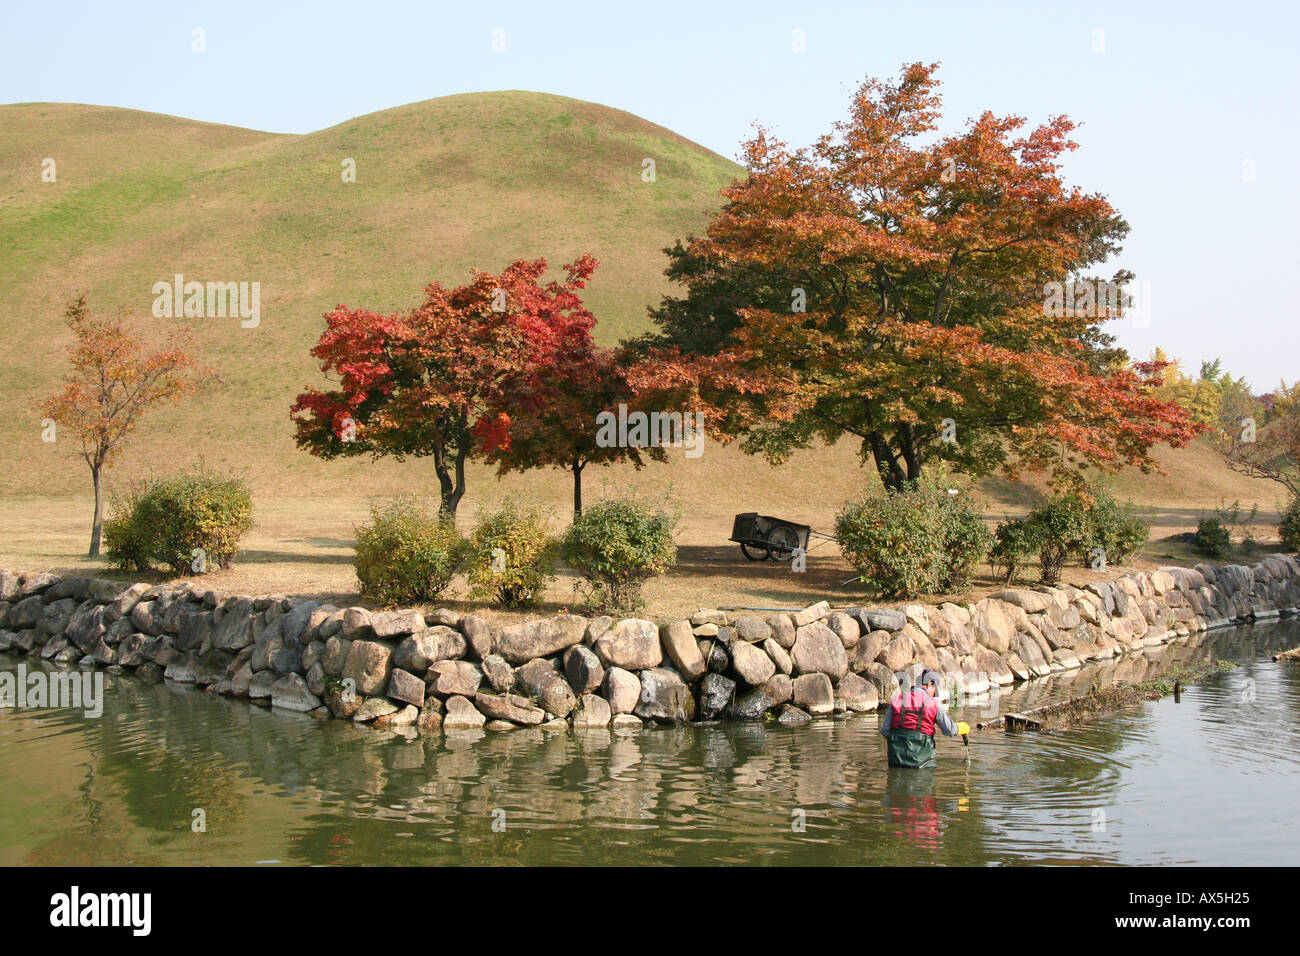 Silla burial mound in Kyeongju, South Korea Stock Photo